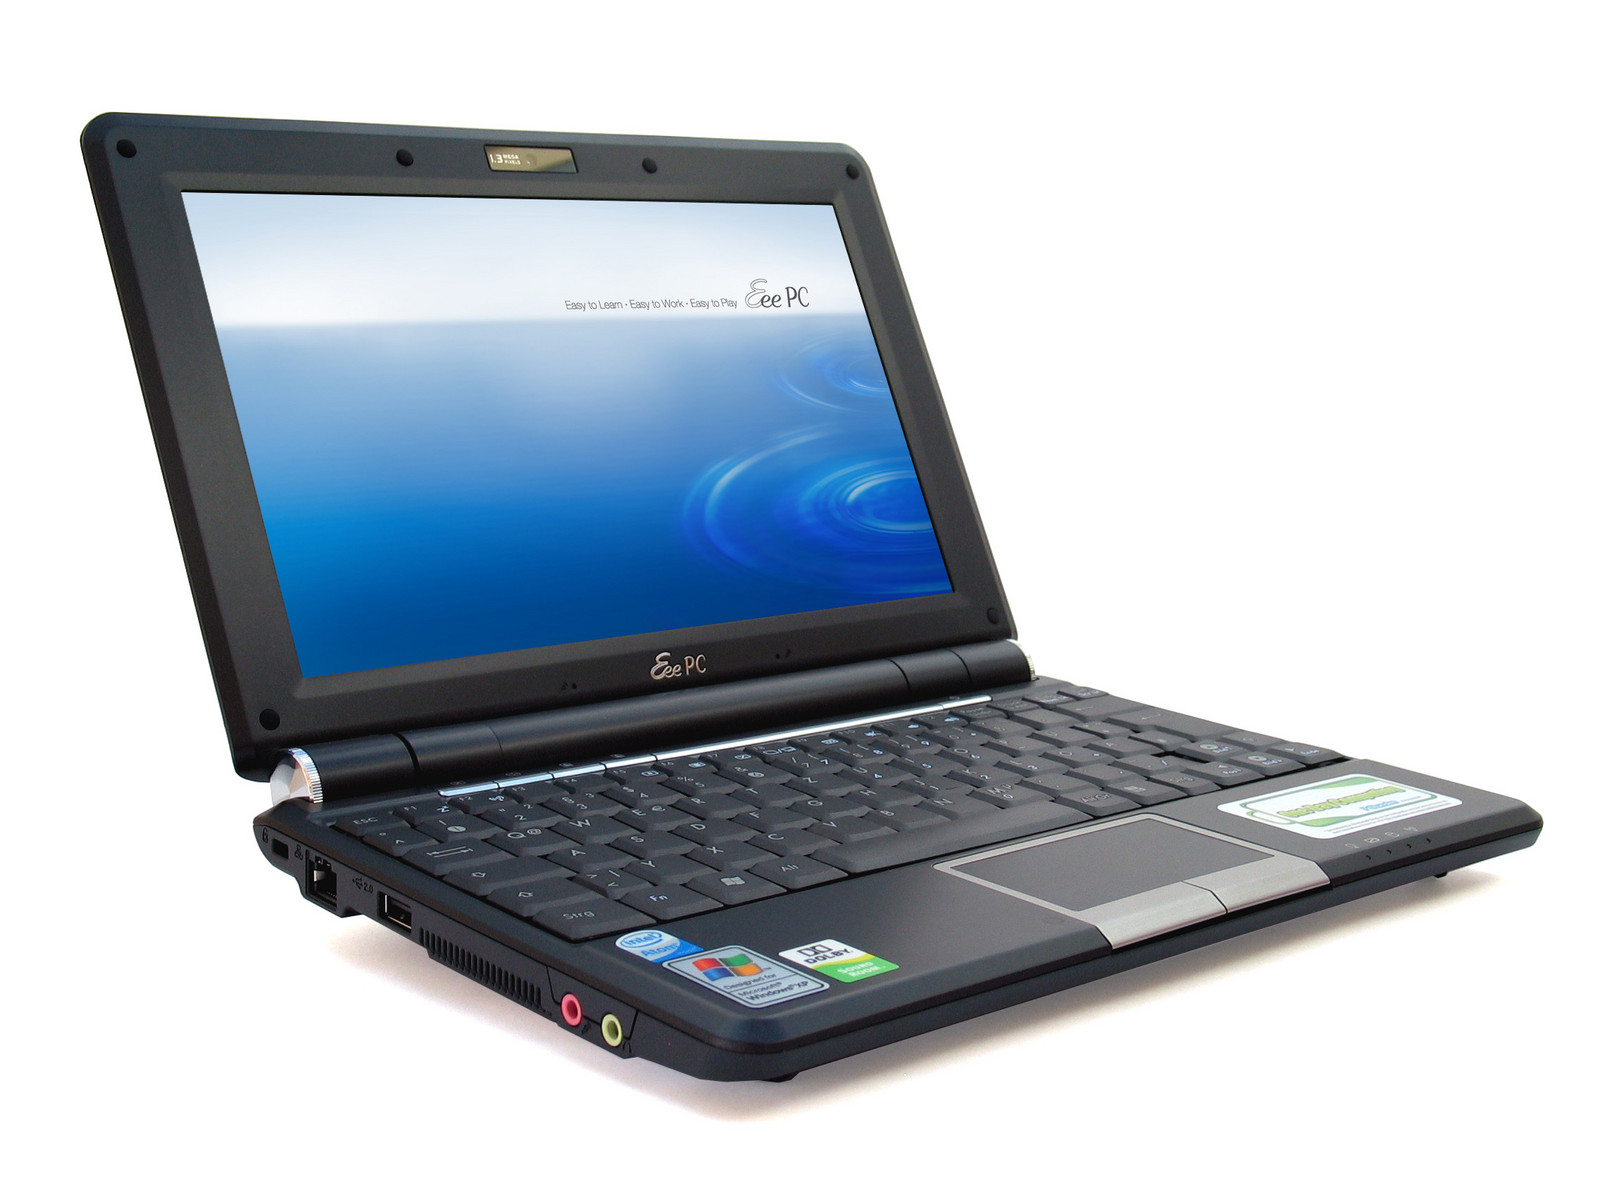 Asus Eee PC 1000HA/XP Intel Chipset Drivers for Windows 7